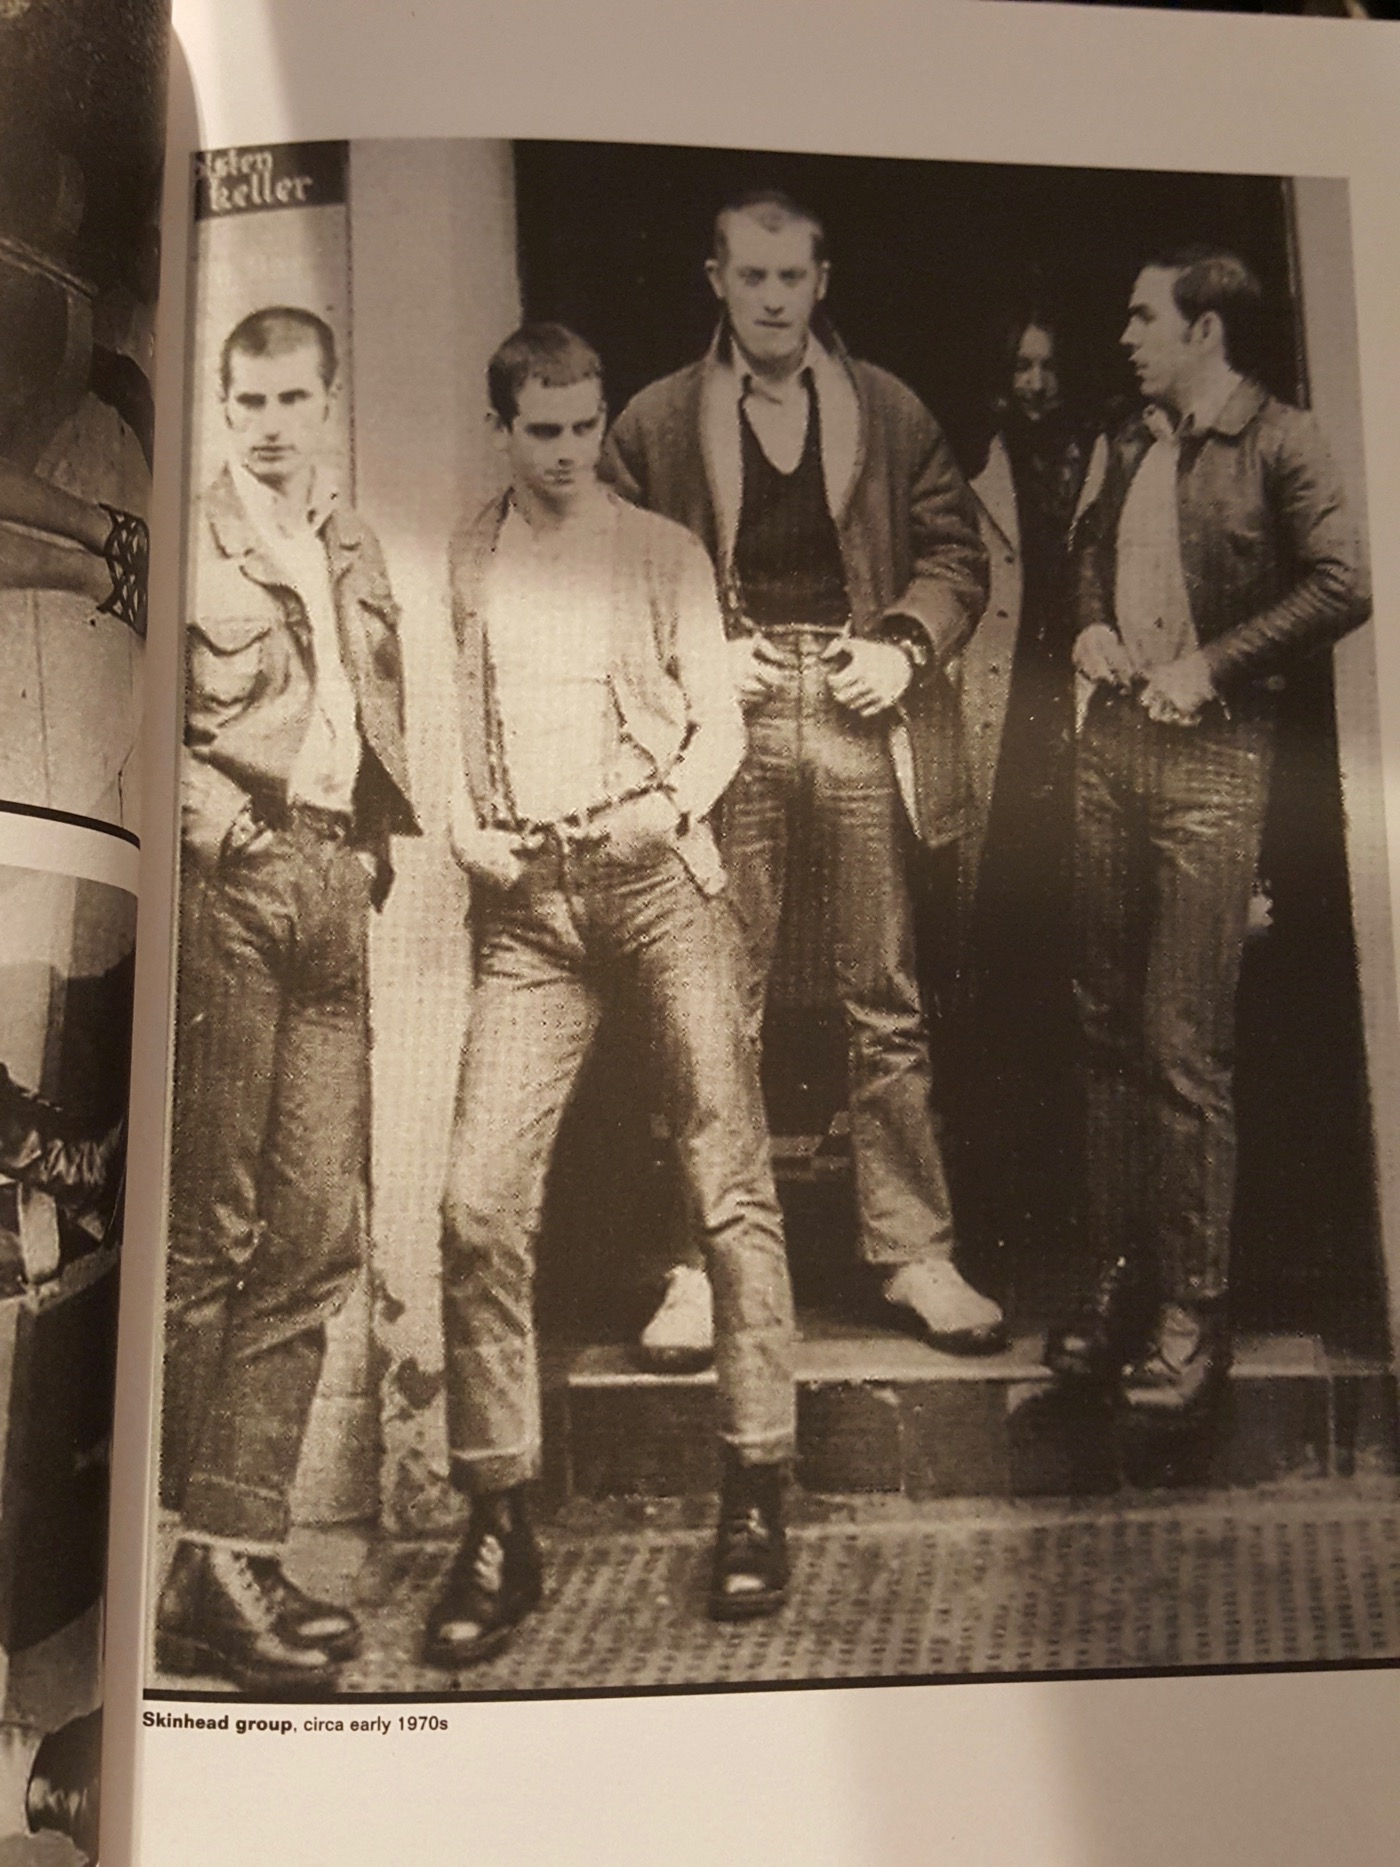 Skinhead – An Archive, by Toby Mott